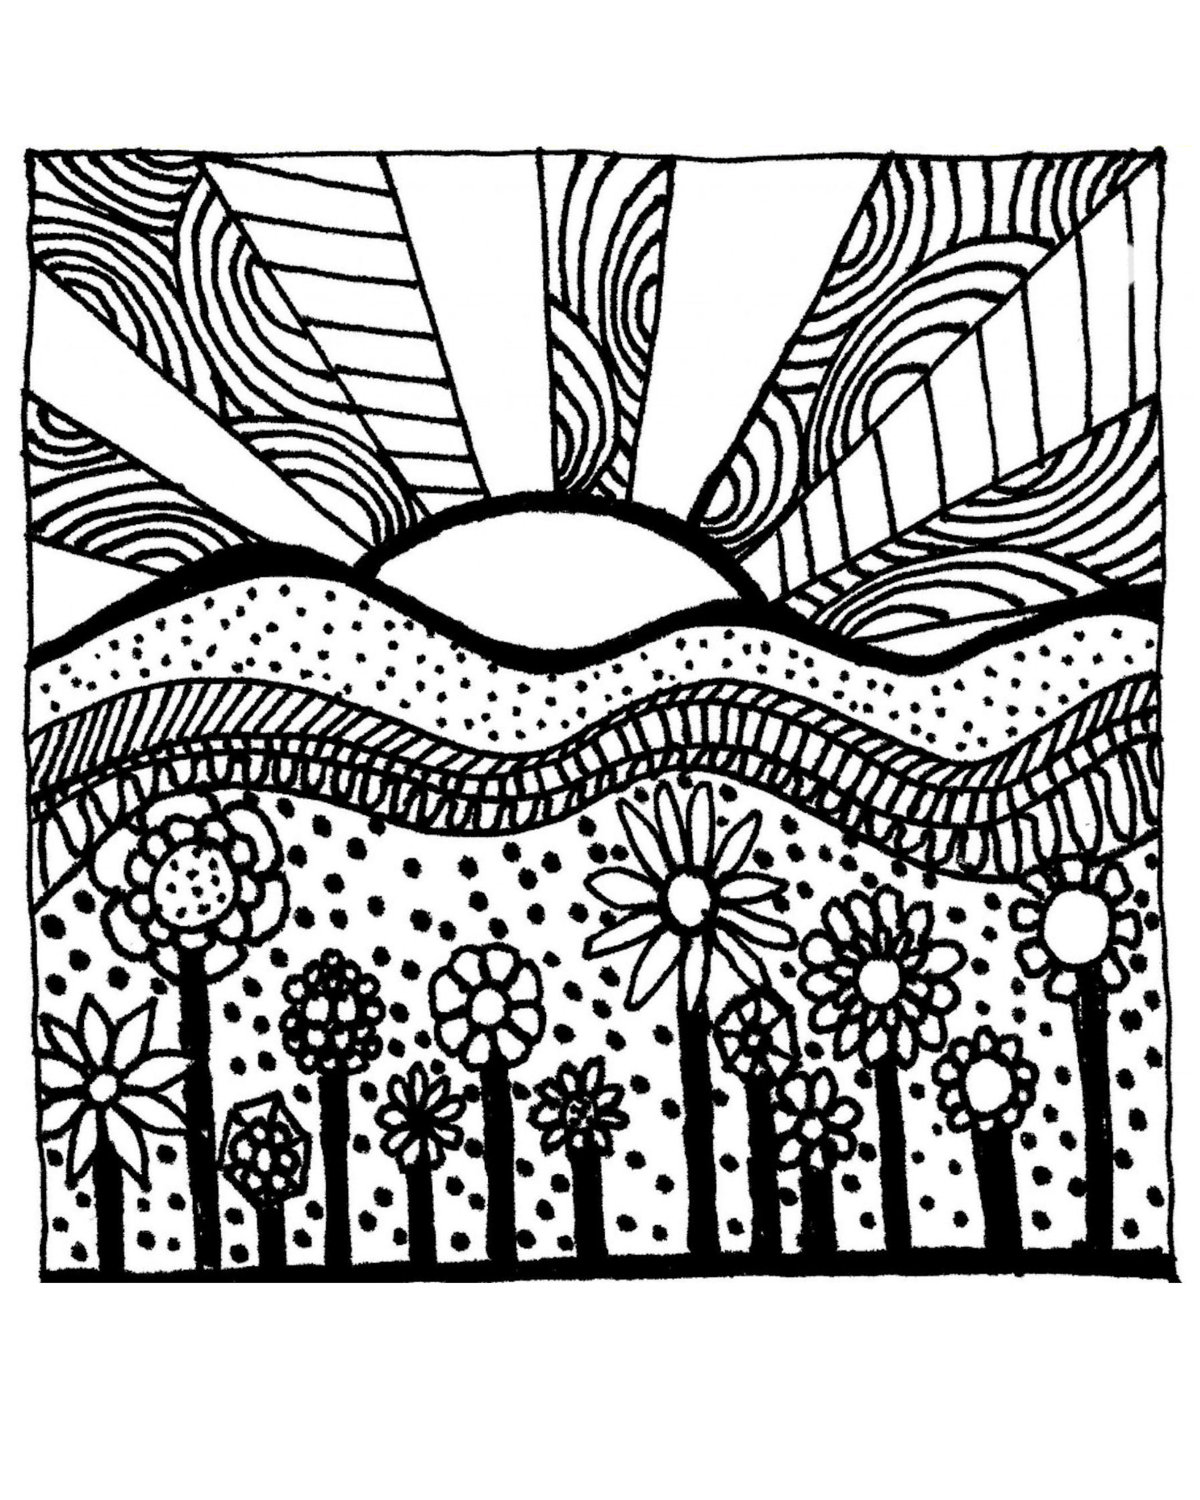 Free Coloring Pages For Adults Only Coloring Pages Free Printable Coloring Pages For Adults Only